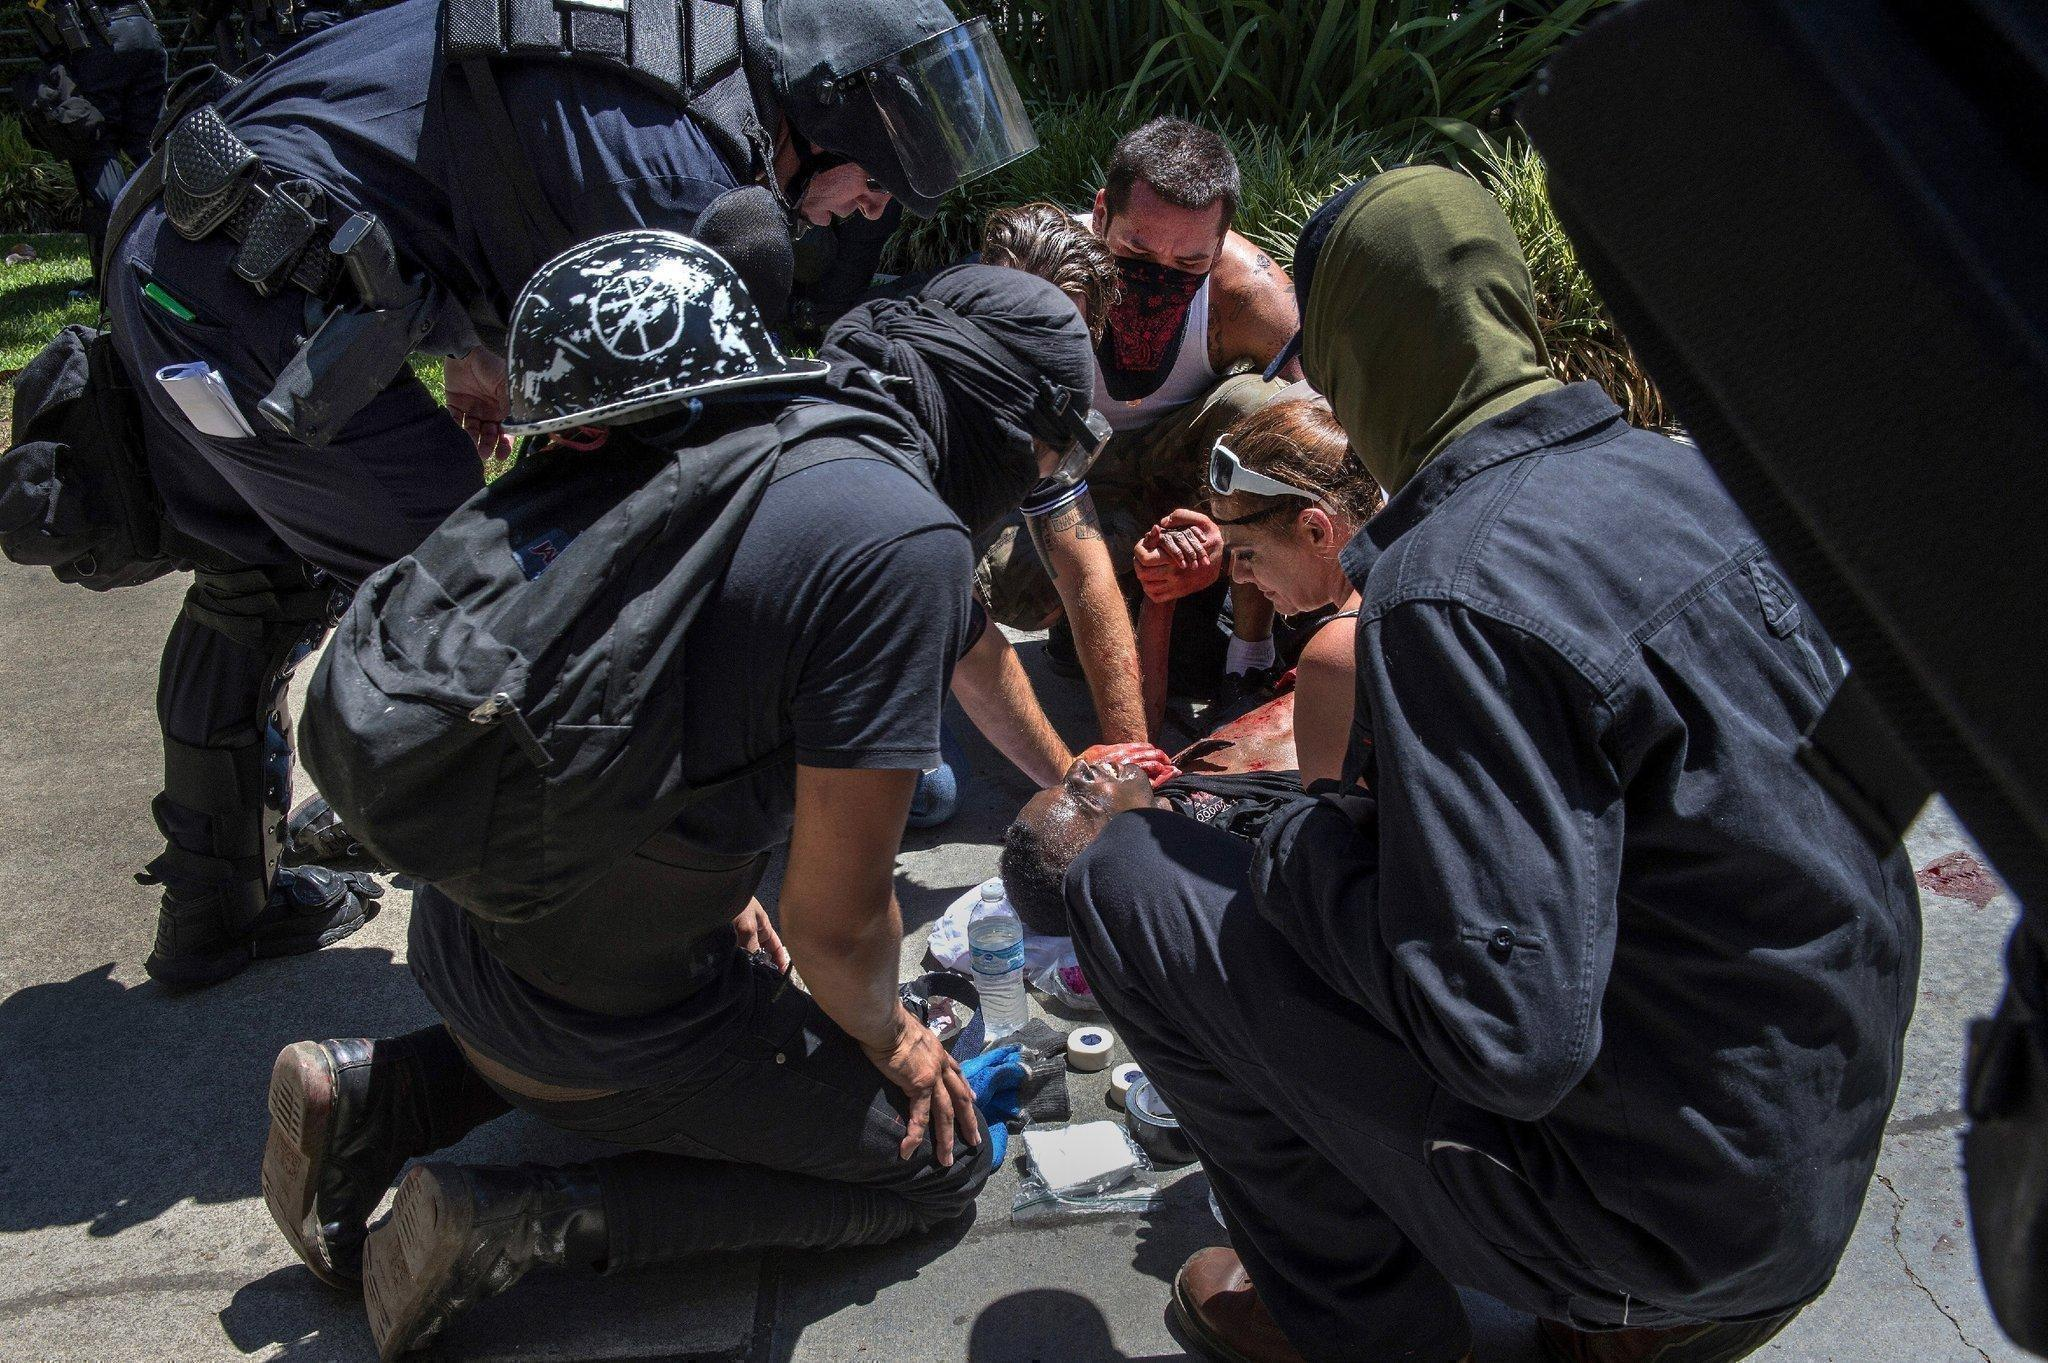 A victim is attended to after he was stabbed during a rally at the Capitol in Sacramento on Sunday. (Renee C. Byer / Associated Press)